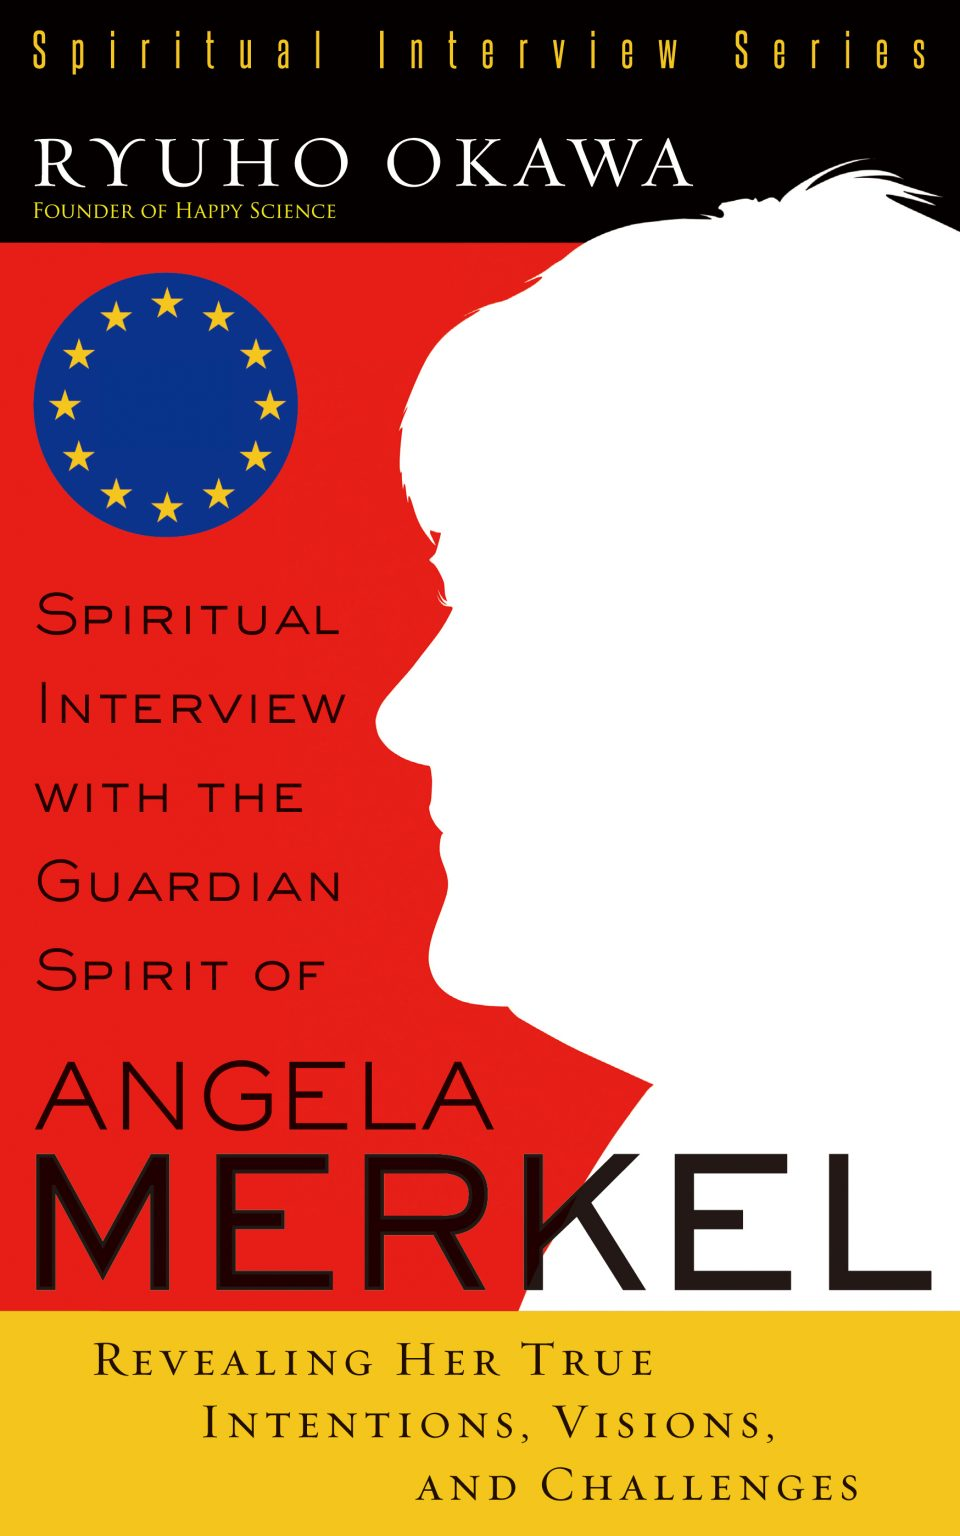 Spiritual Interview with the Guardian Spirit of Angela Merkel: Revealing Her True Intentions, Visions, and Challenges (Spiritual Interview) is out now!